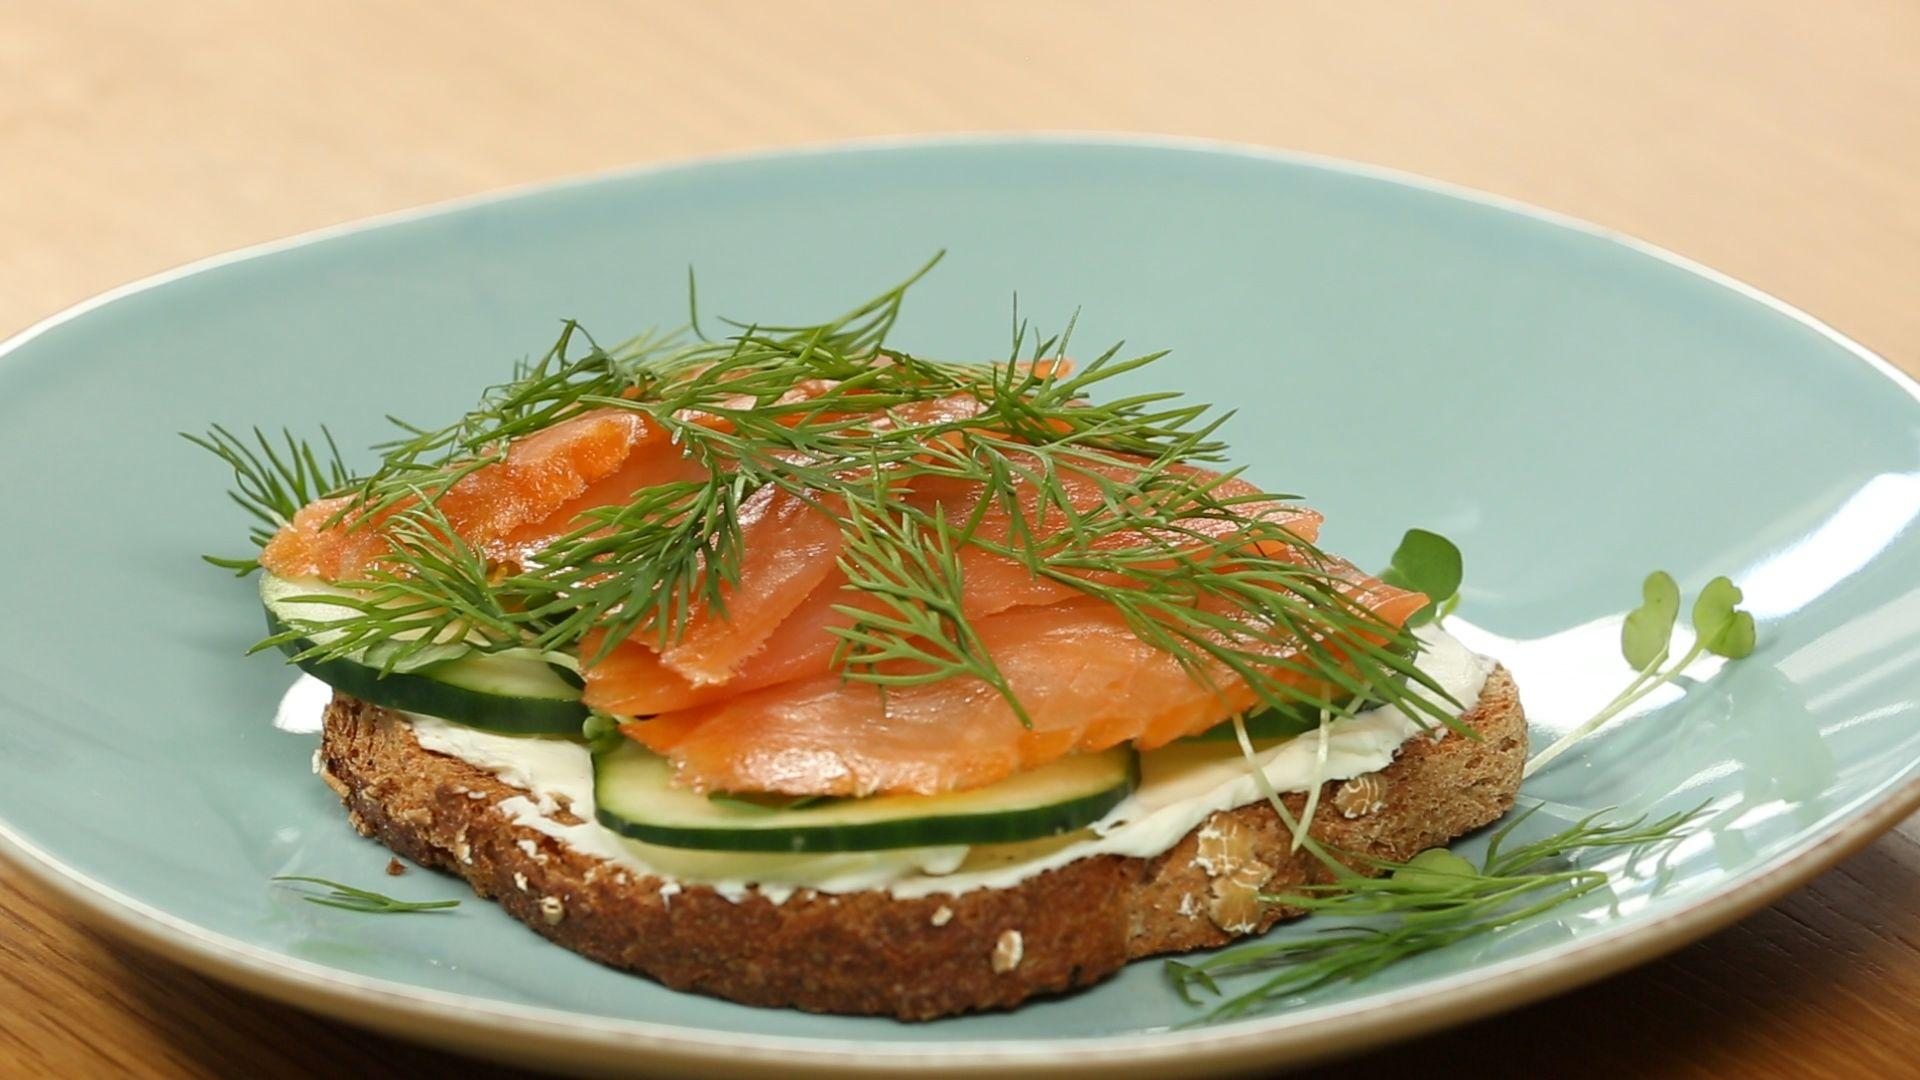 How to Make Healthy Smoked Salmon and Cucumber Breakfast Toast